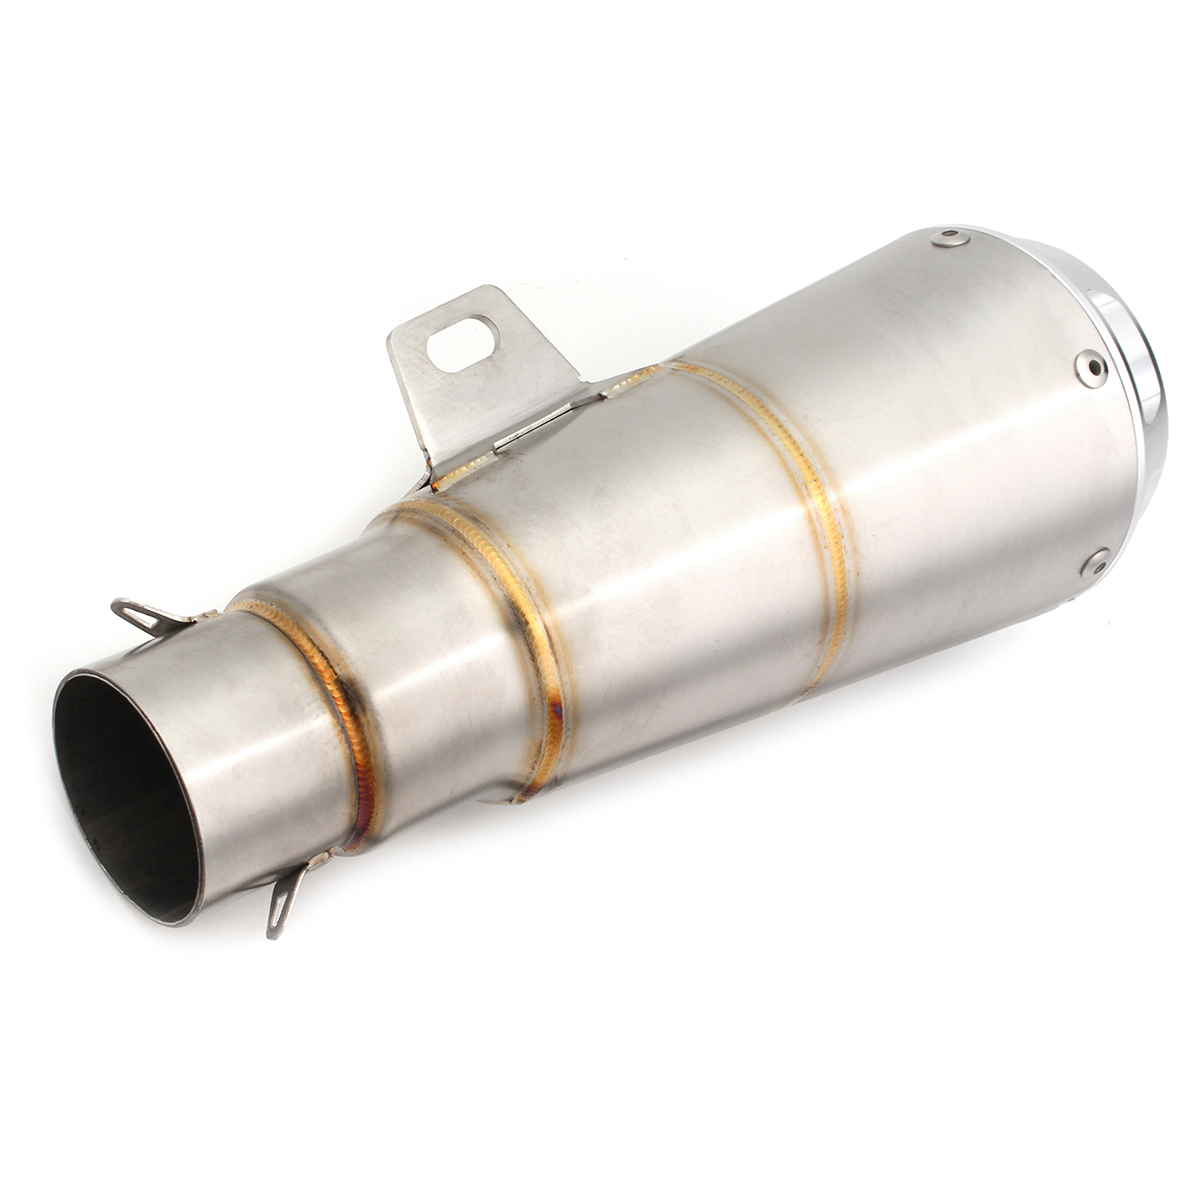 38-51mm Flat/ Round Outlet Stainless Steel Motorcycle Exhaust Muffler Pipe Tip with Silencer